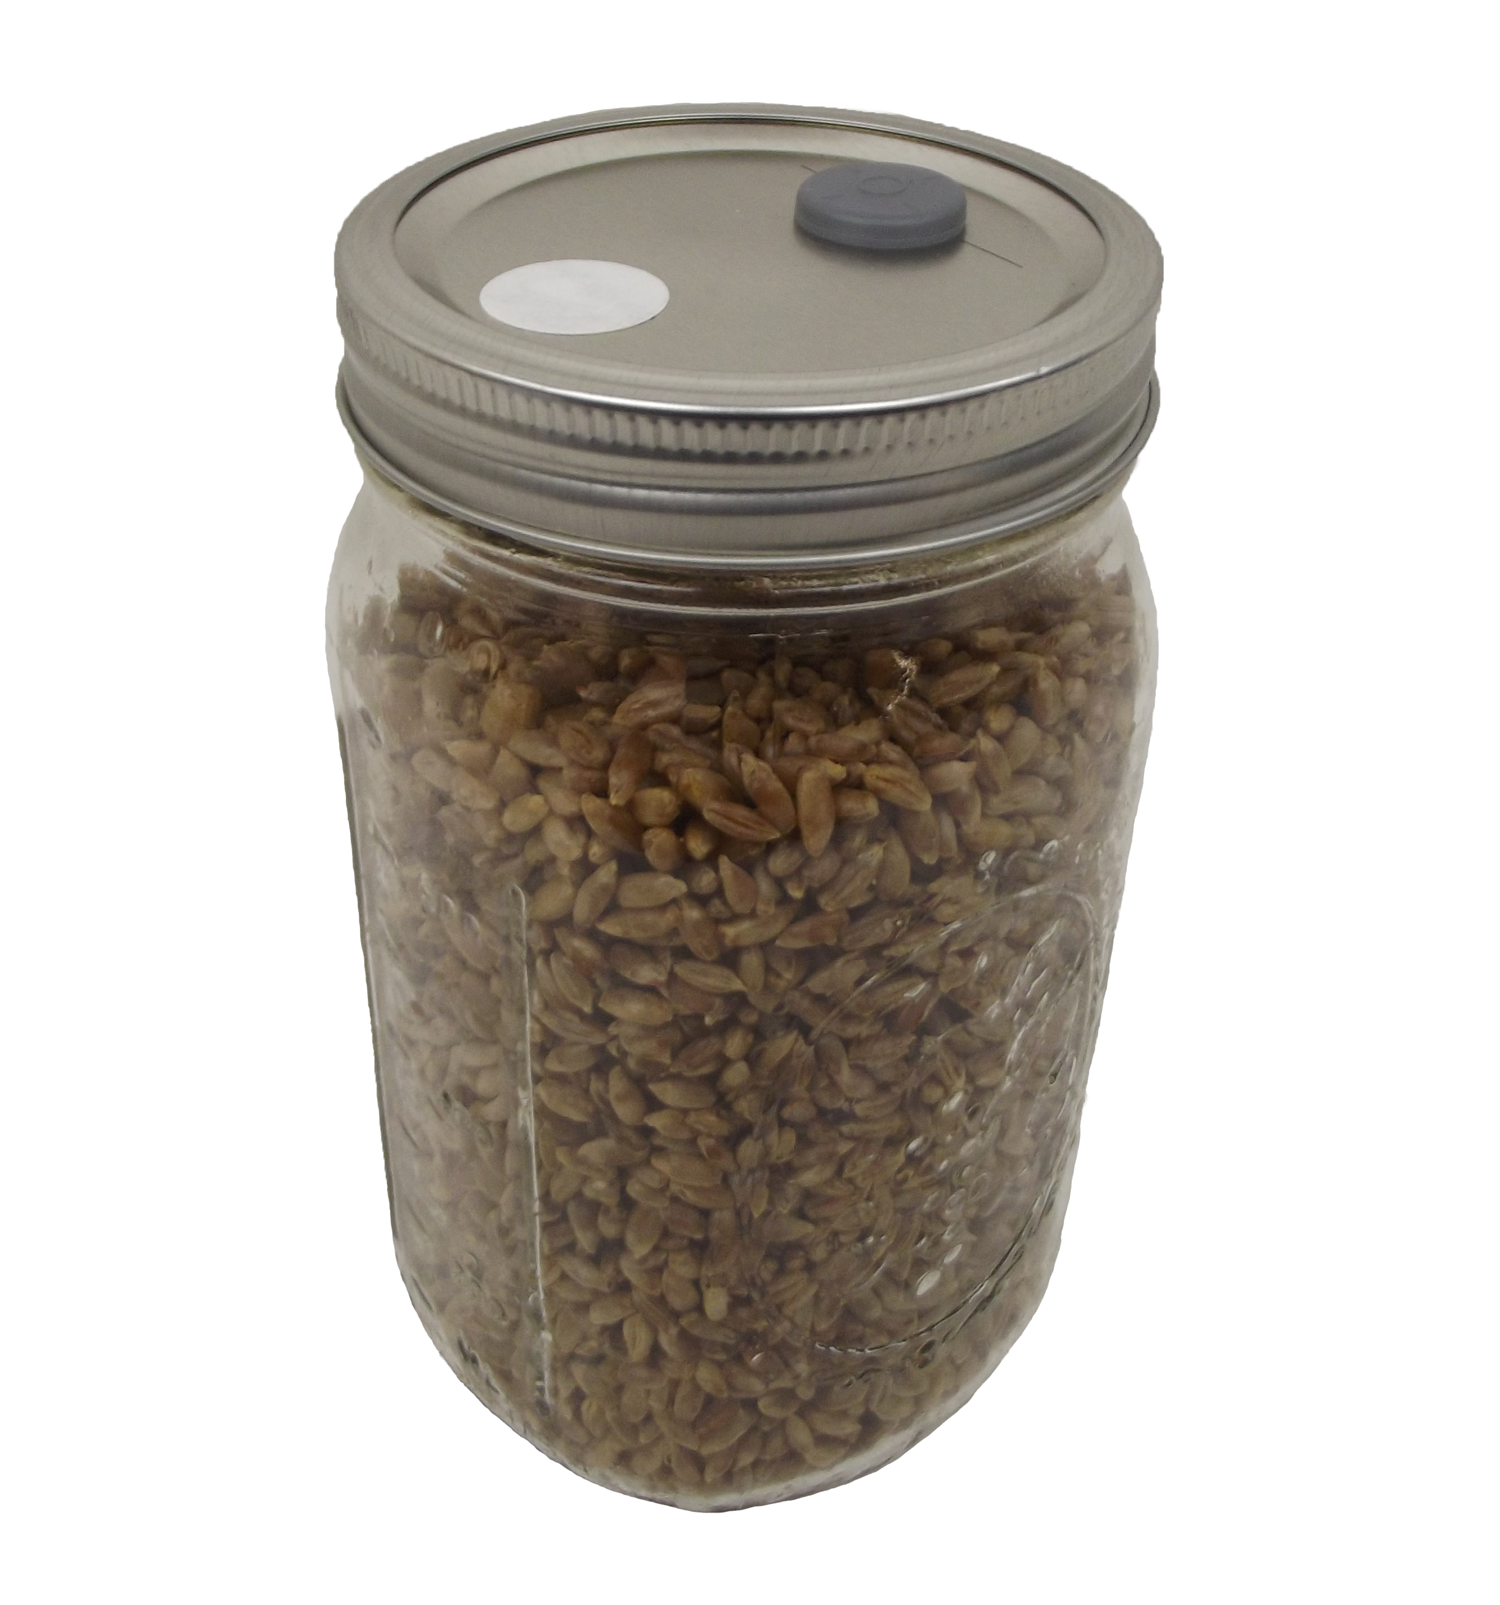 Sterilized Rye Berry Mushroom Substrate in Injectable Jar